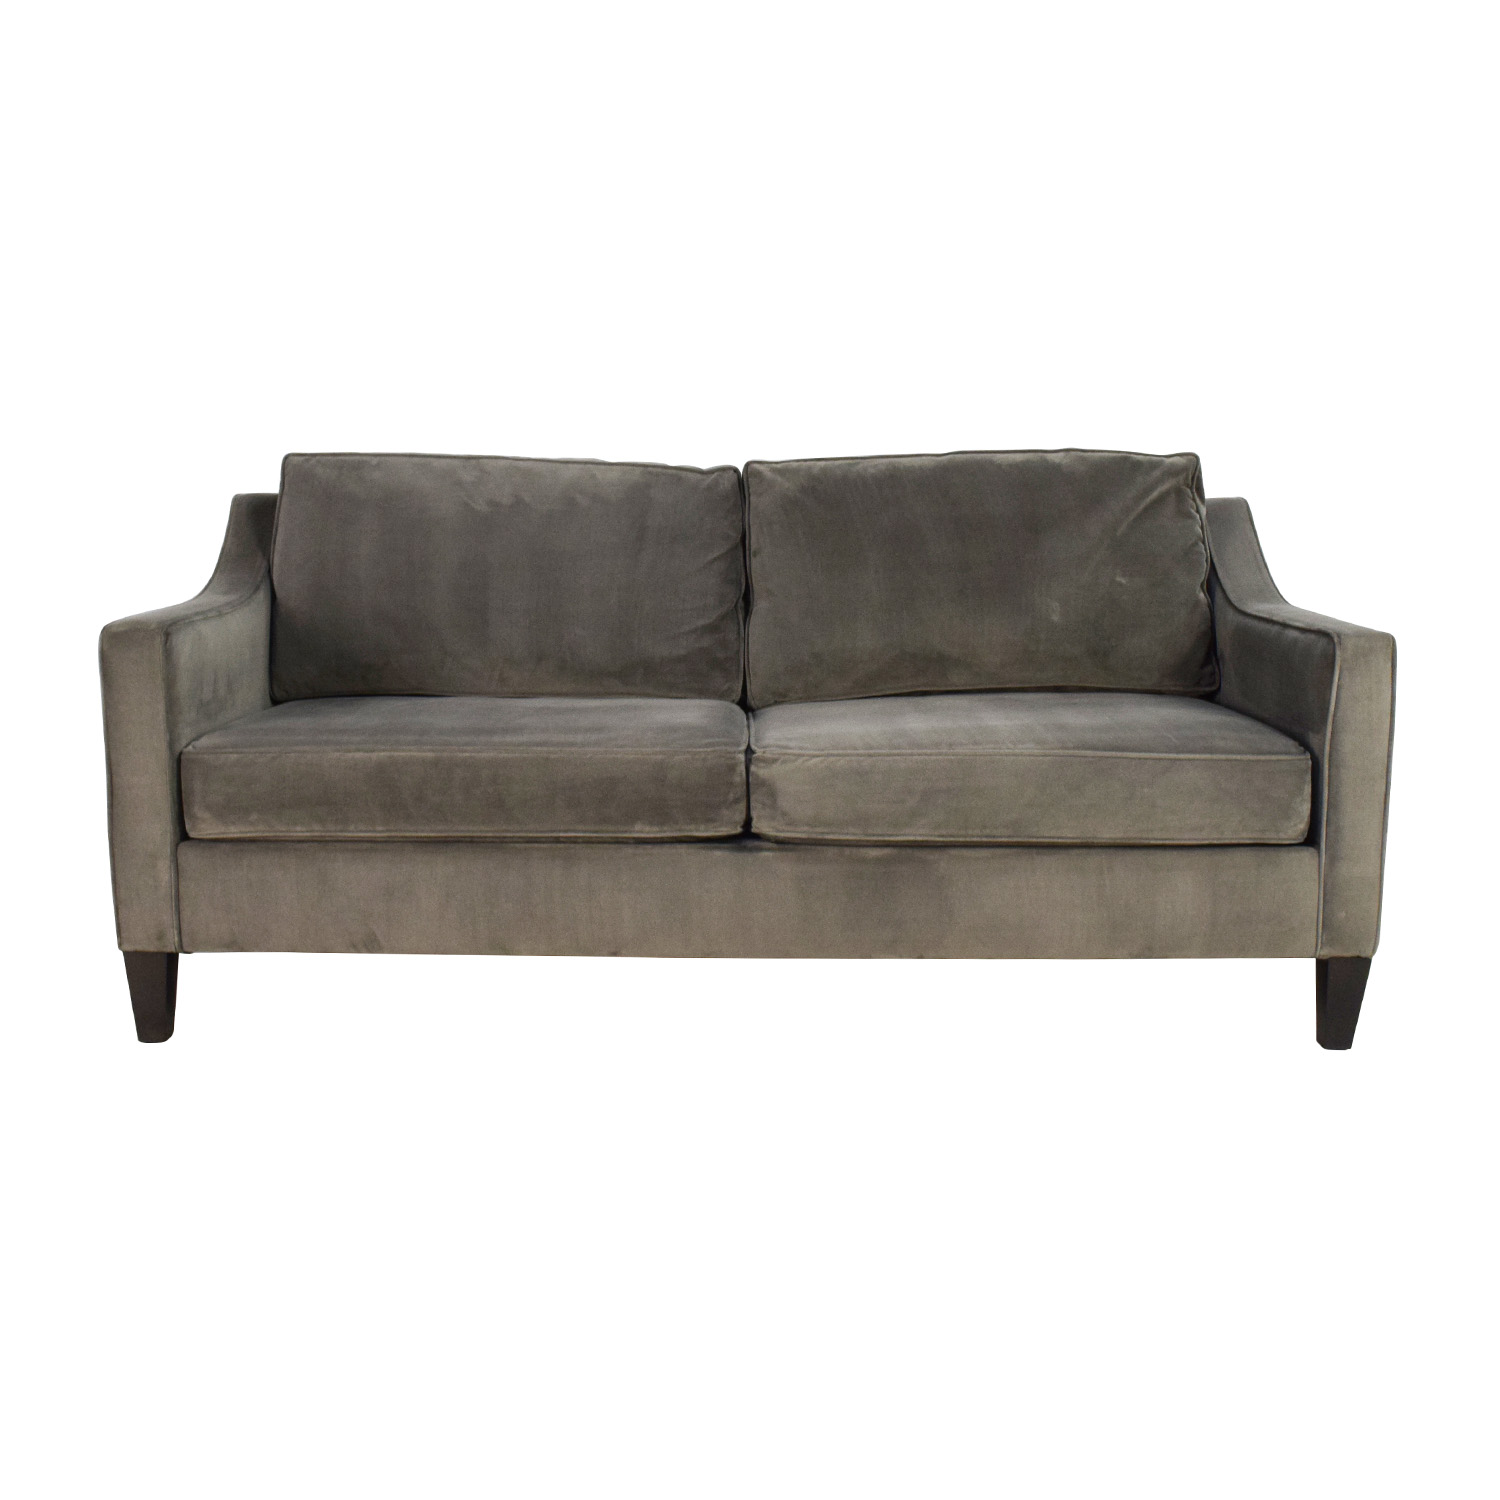 West Elm West Elm Paidge Sofa Sofas ...